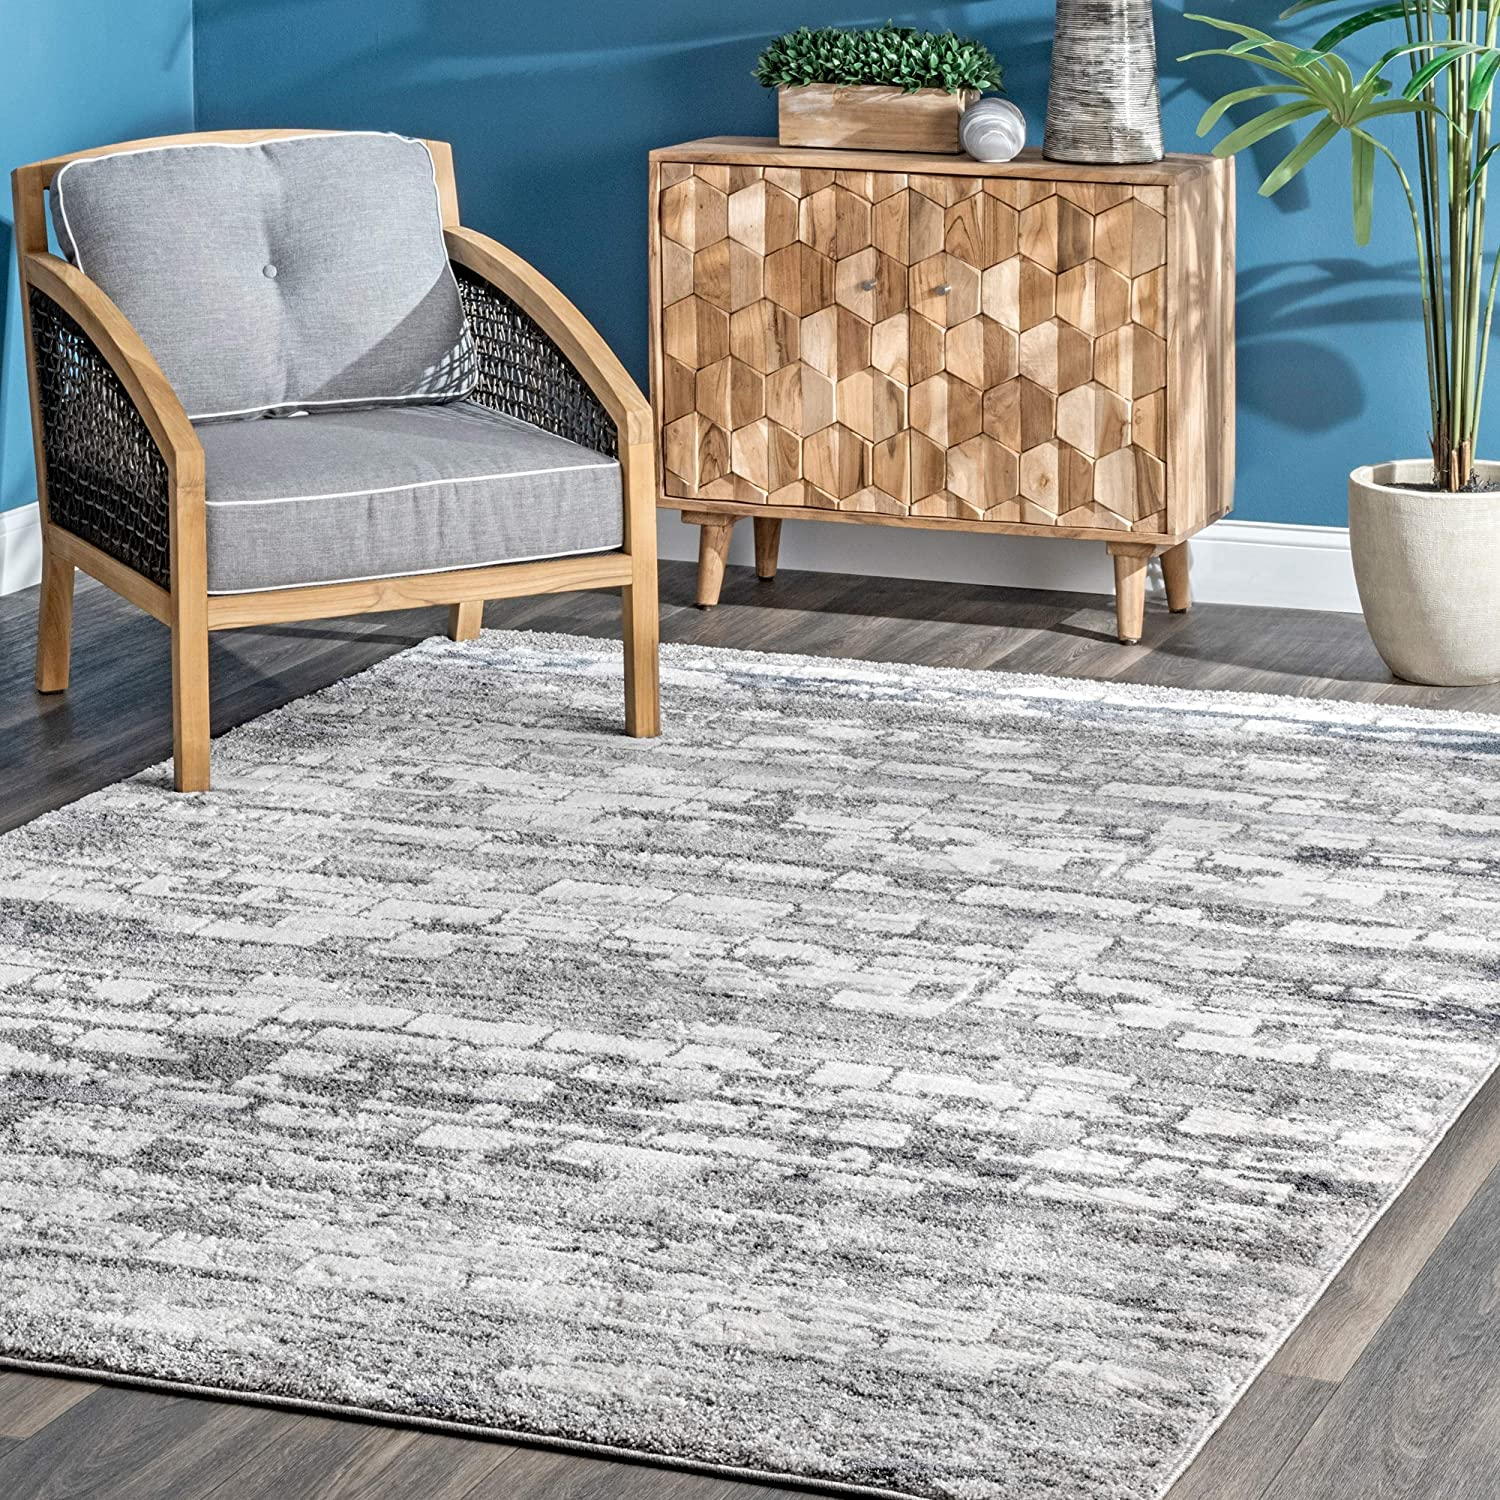 Amazon Com Nuloom Nevelson Brick Abstract Area Rug 5 X 8 Silver Furniture Decor